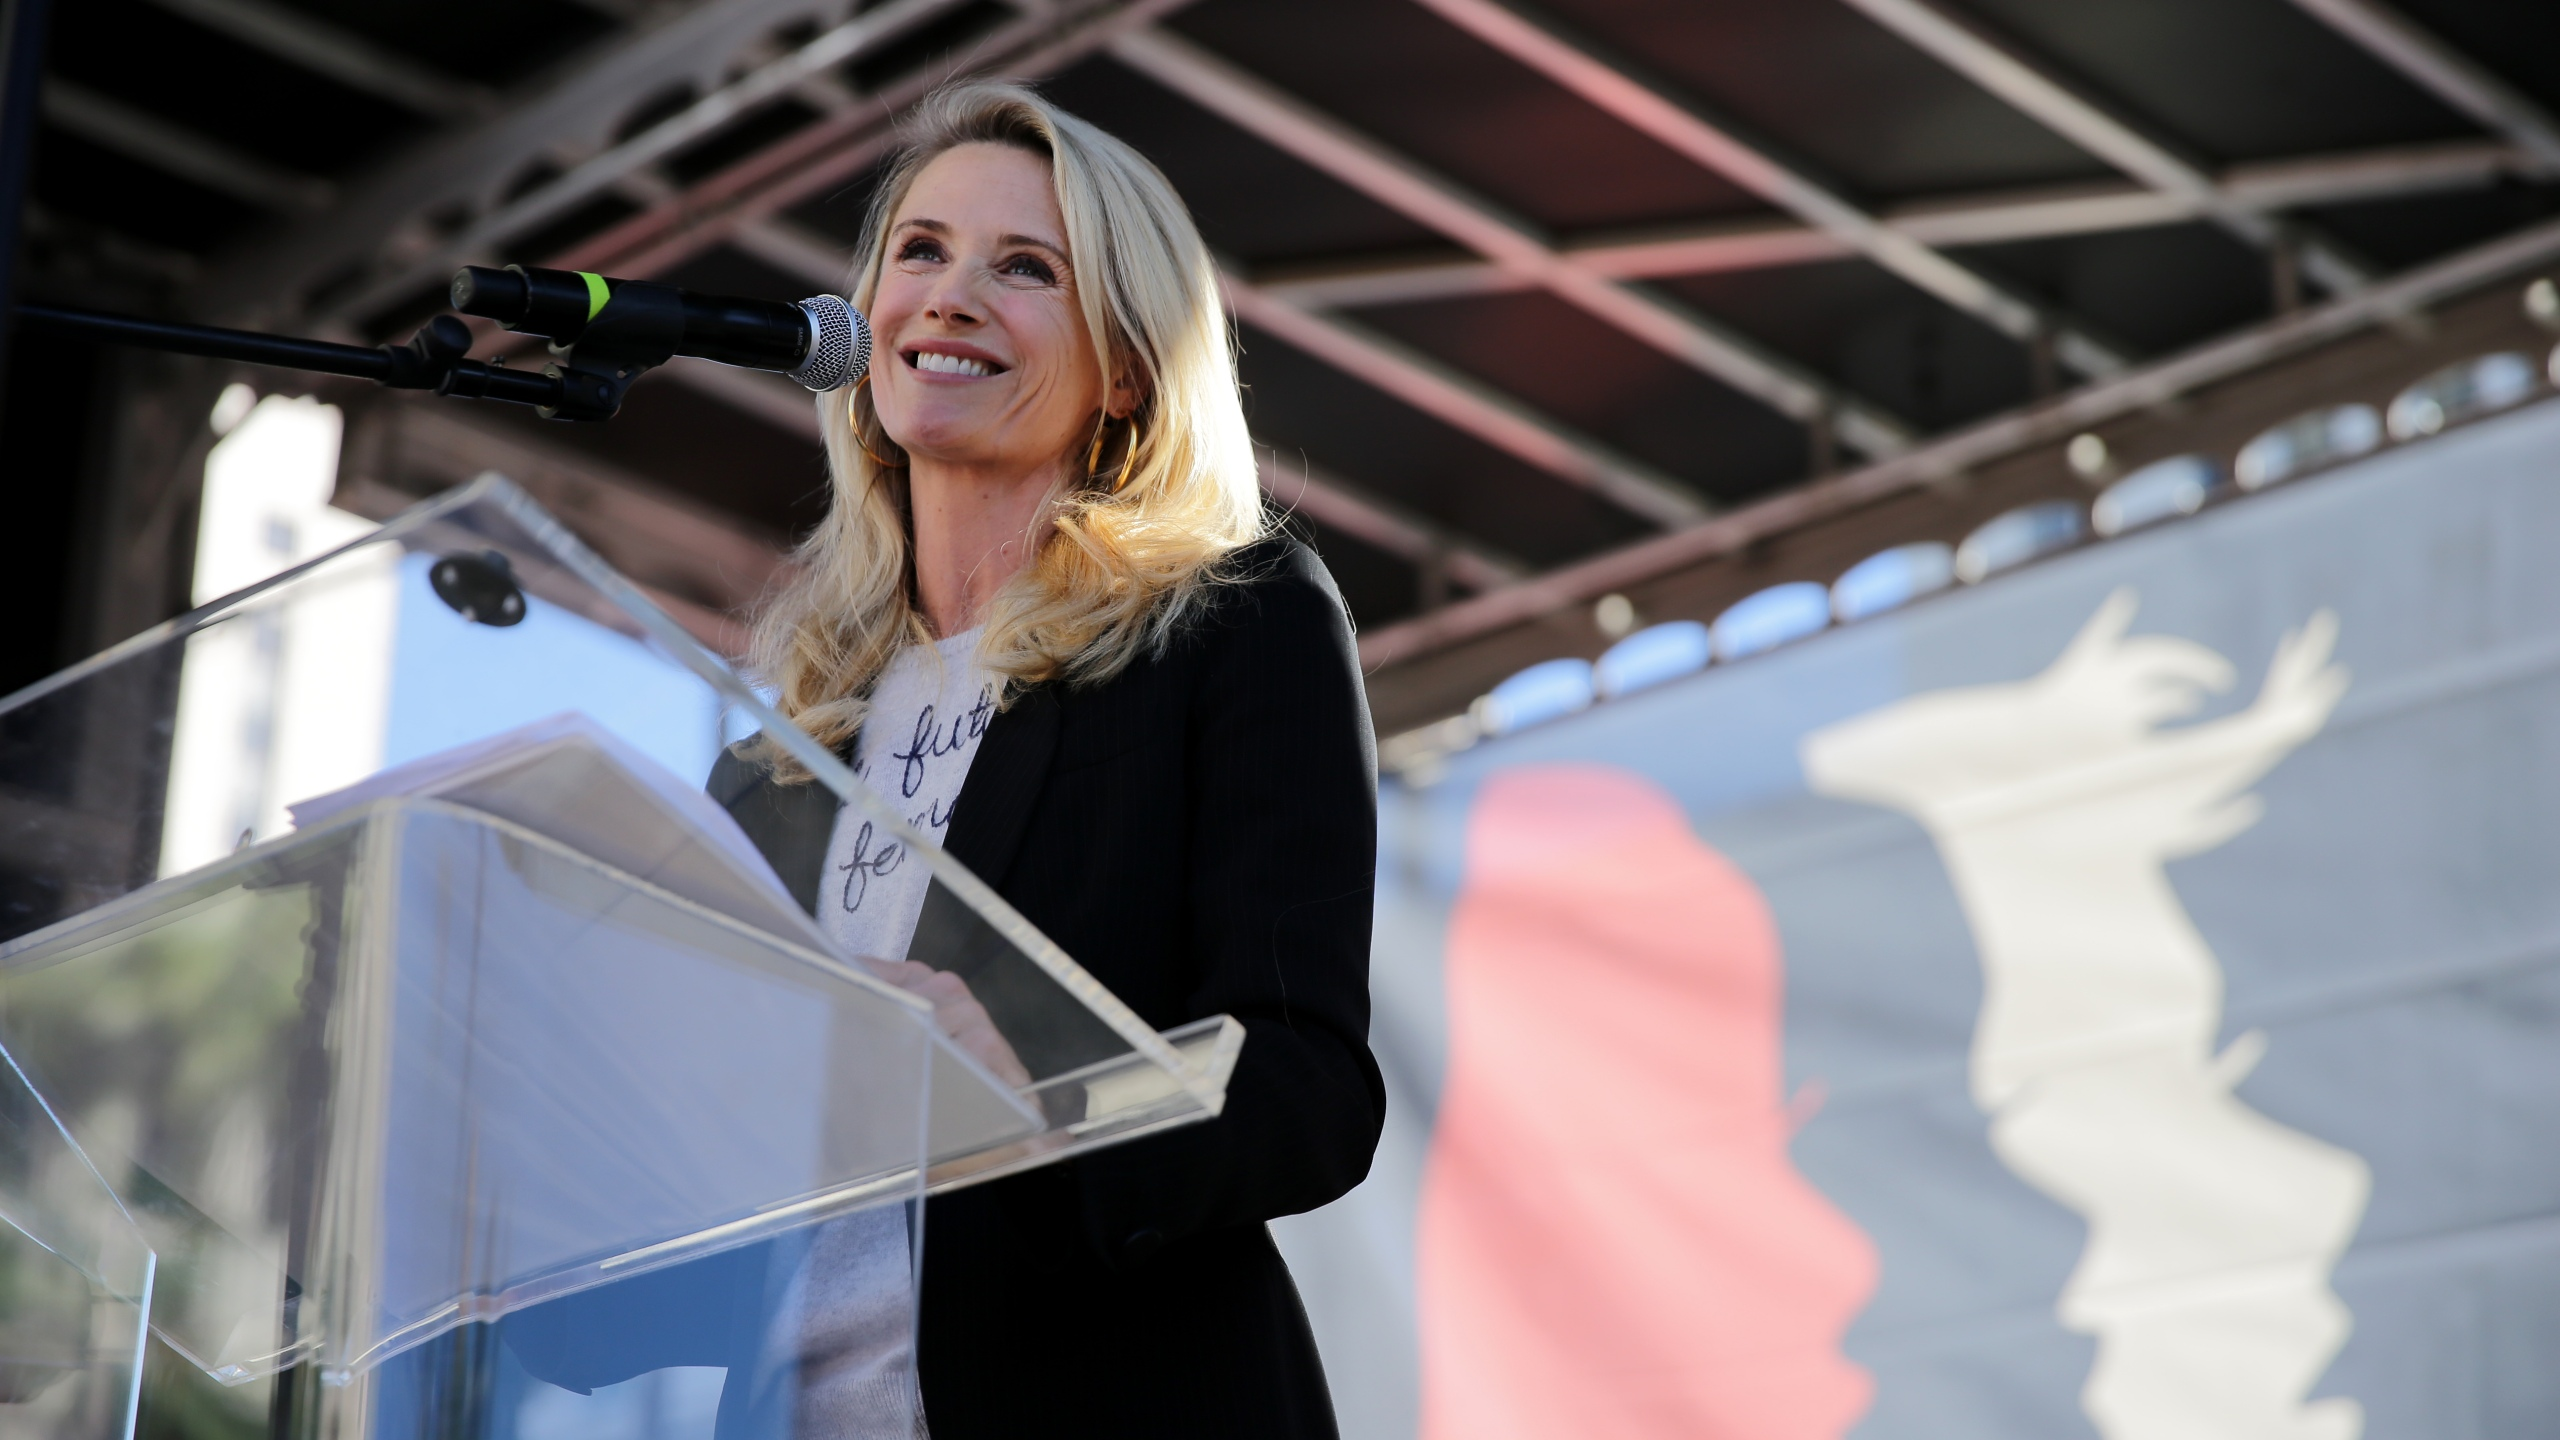 Jennifer Siebel Newsom speaks at the Women's March on Jan. 19, 2019 in Los Angeles. (Credit: Sarah Morris/Getty Images)